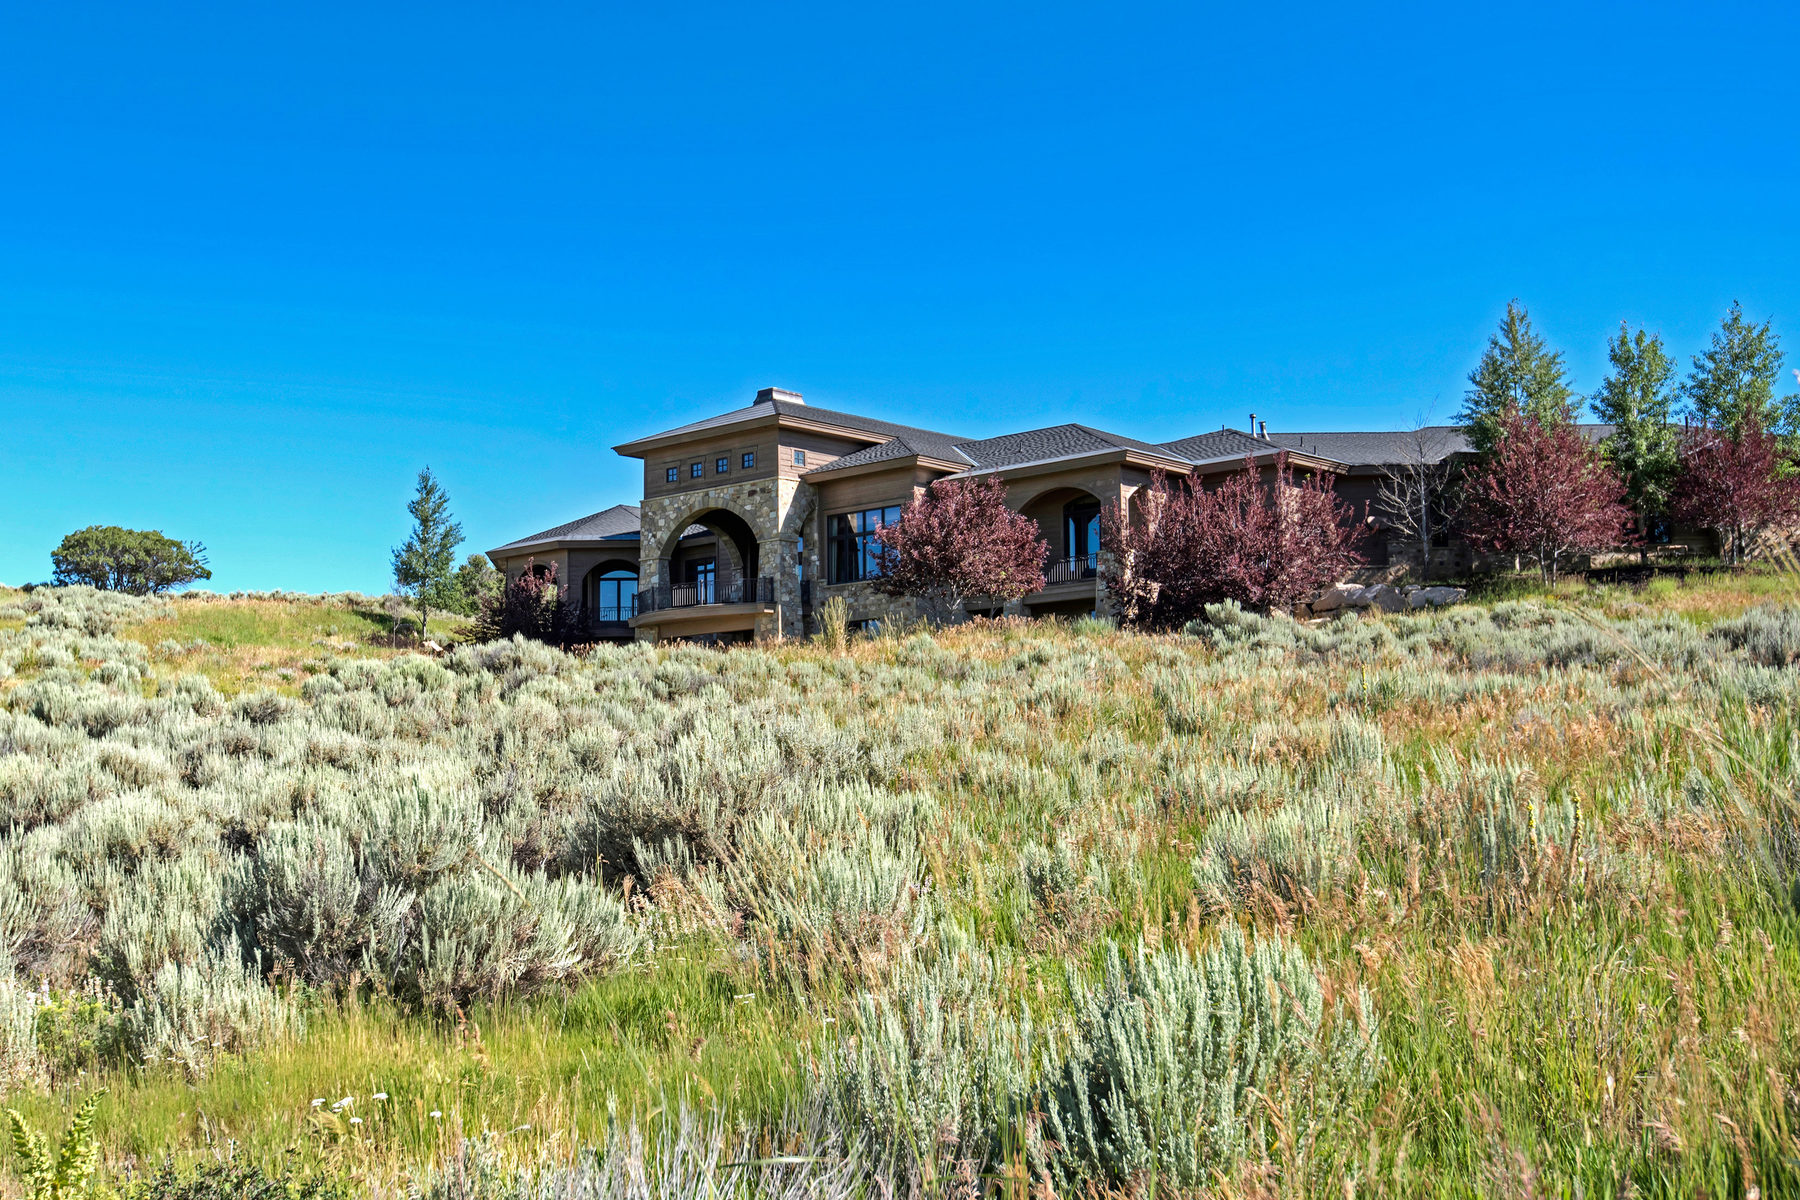 Casa Unifamiliar por un Venta en Amazing Location & Views in Promontory 7501 N Promontory Ranch Rd Park City, Utah, 84098 Estados Unidos